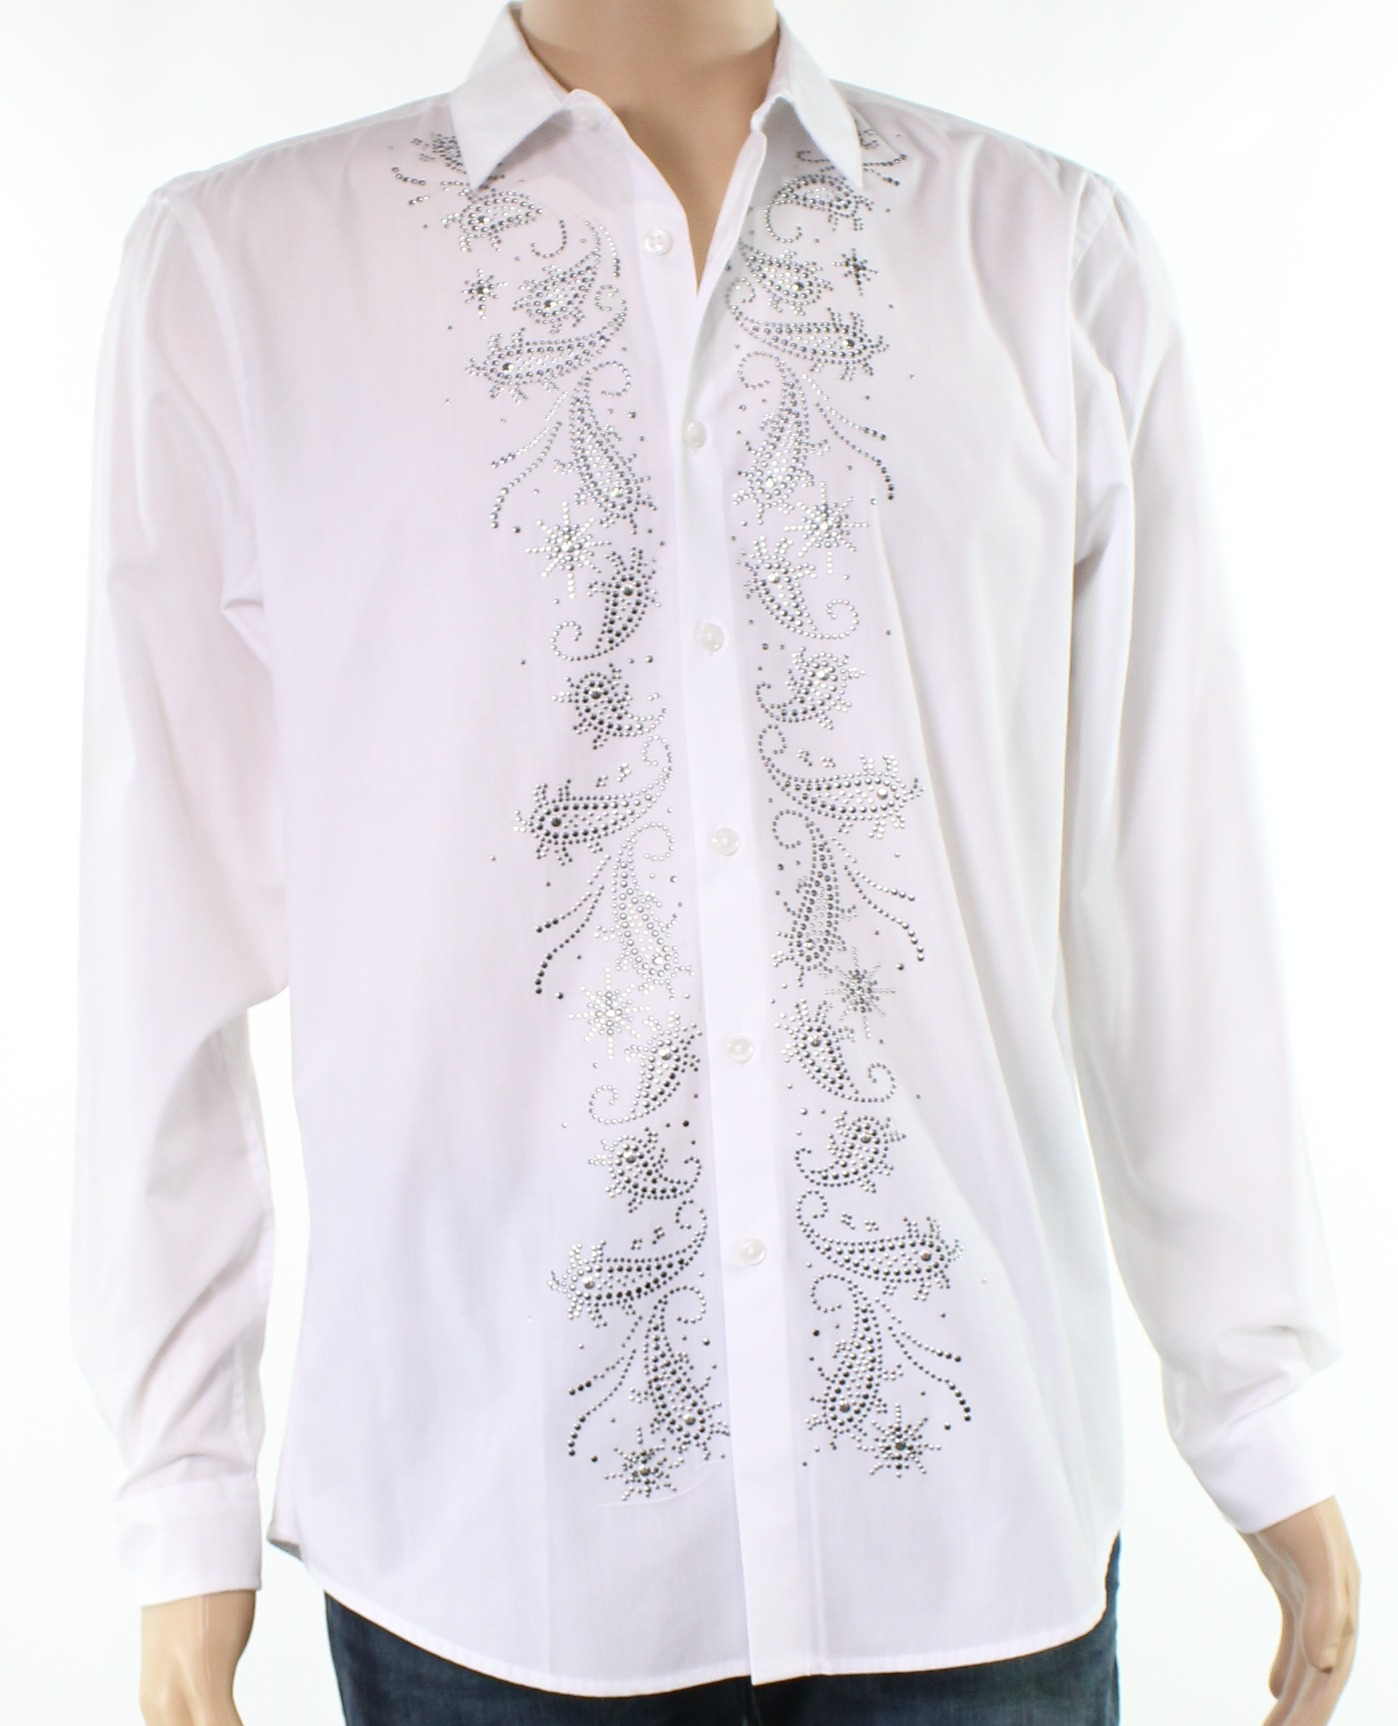 Inc New White Mens Size Small S Beaded Paisley Button Down Dress